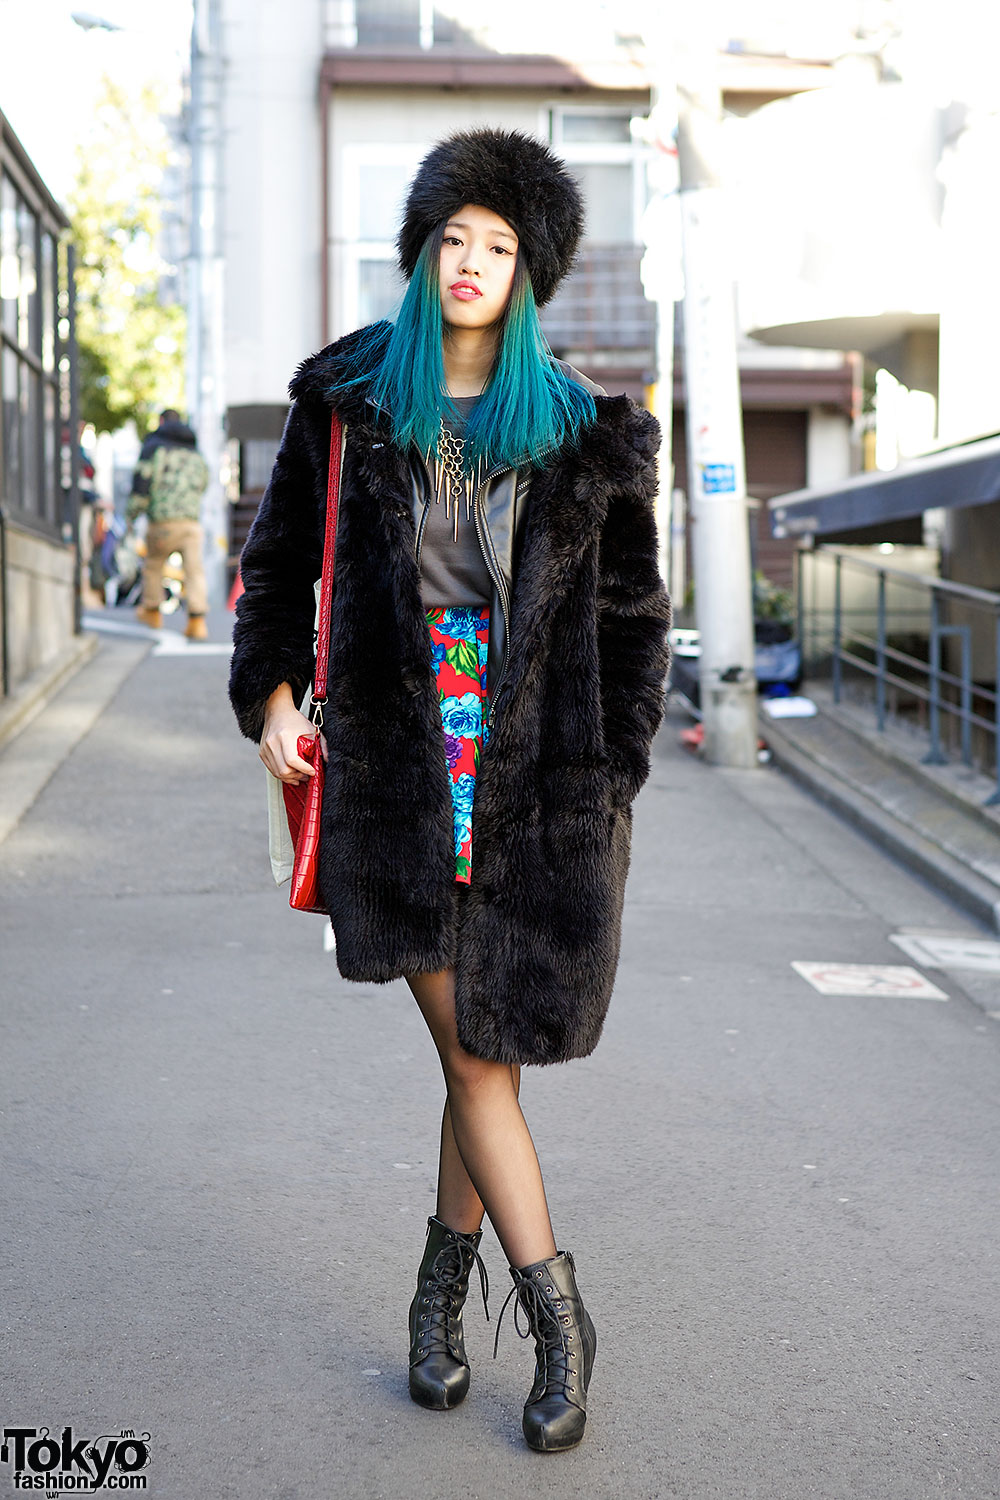 a753d0d104a Blue Ombre Hair, Faux Fur Coat & Spiked Necklace in Harajuku